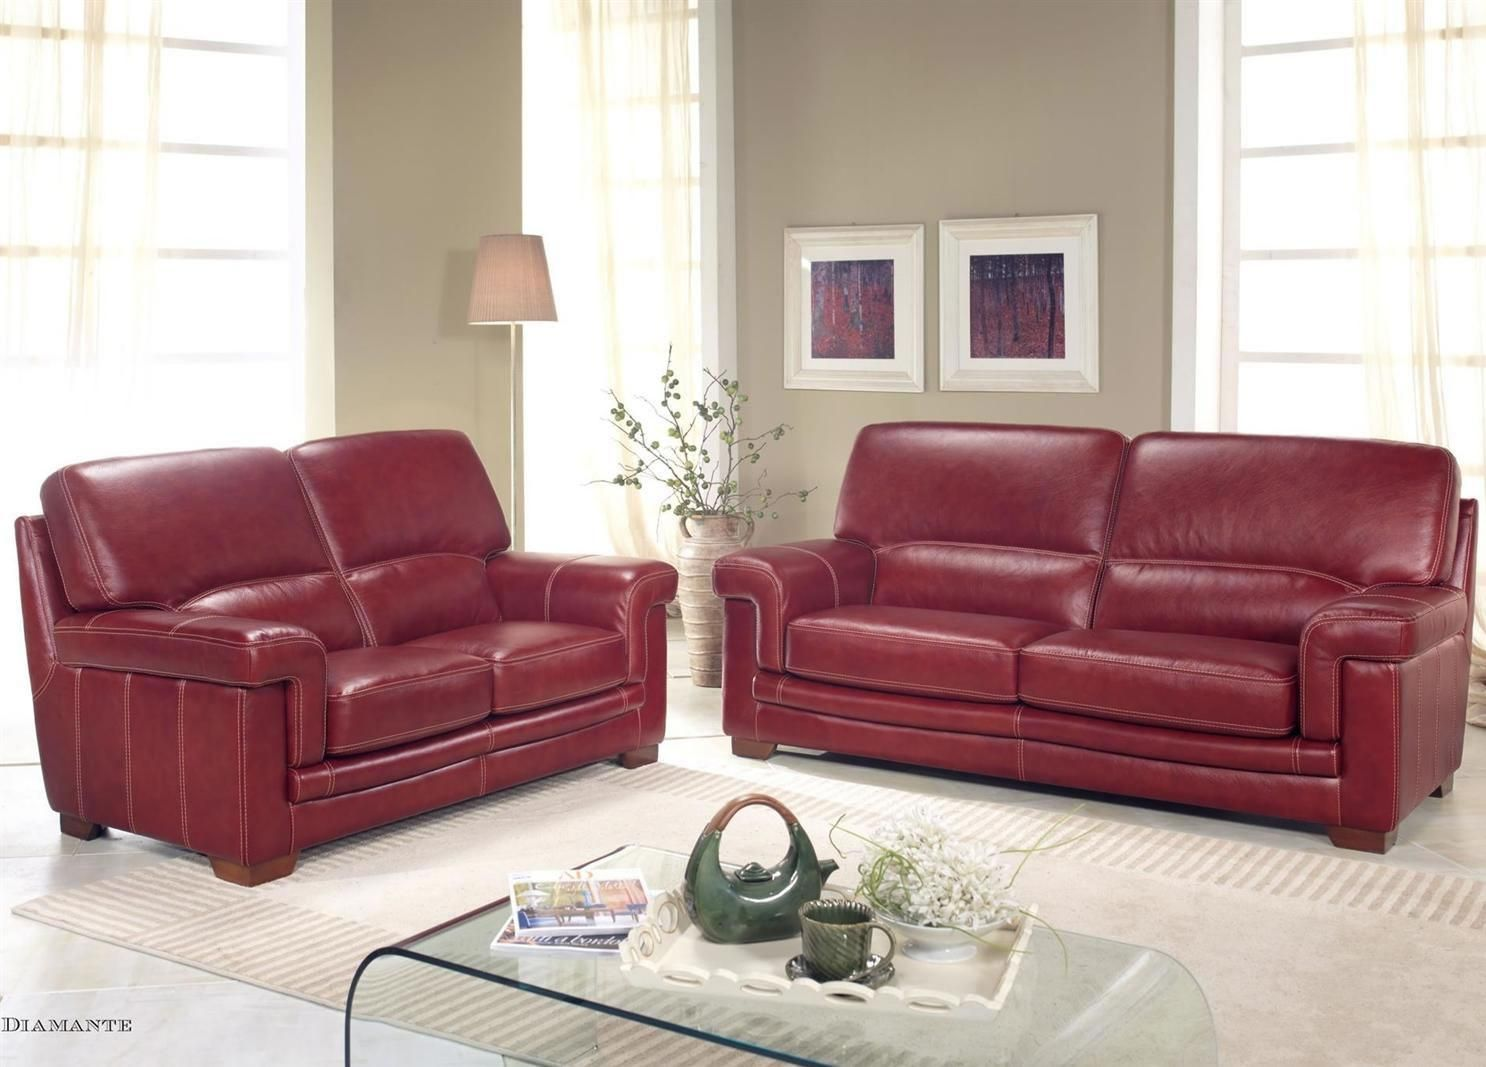 Bardi Diamante Leather Sofa Collection From George